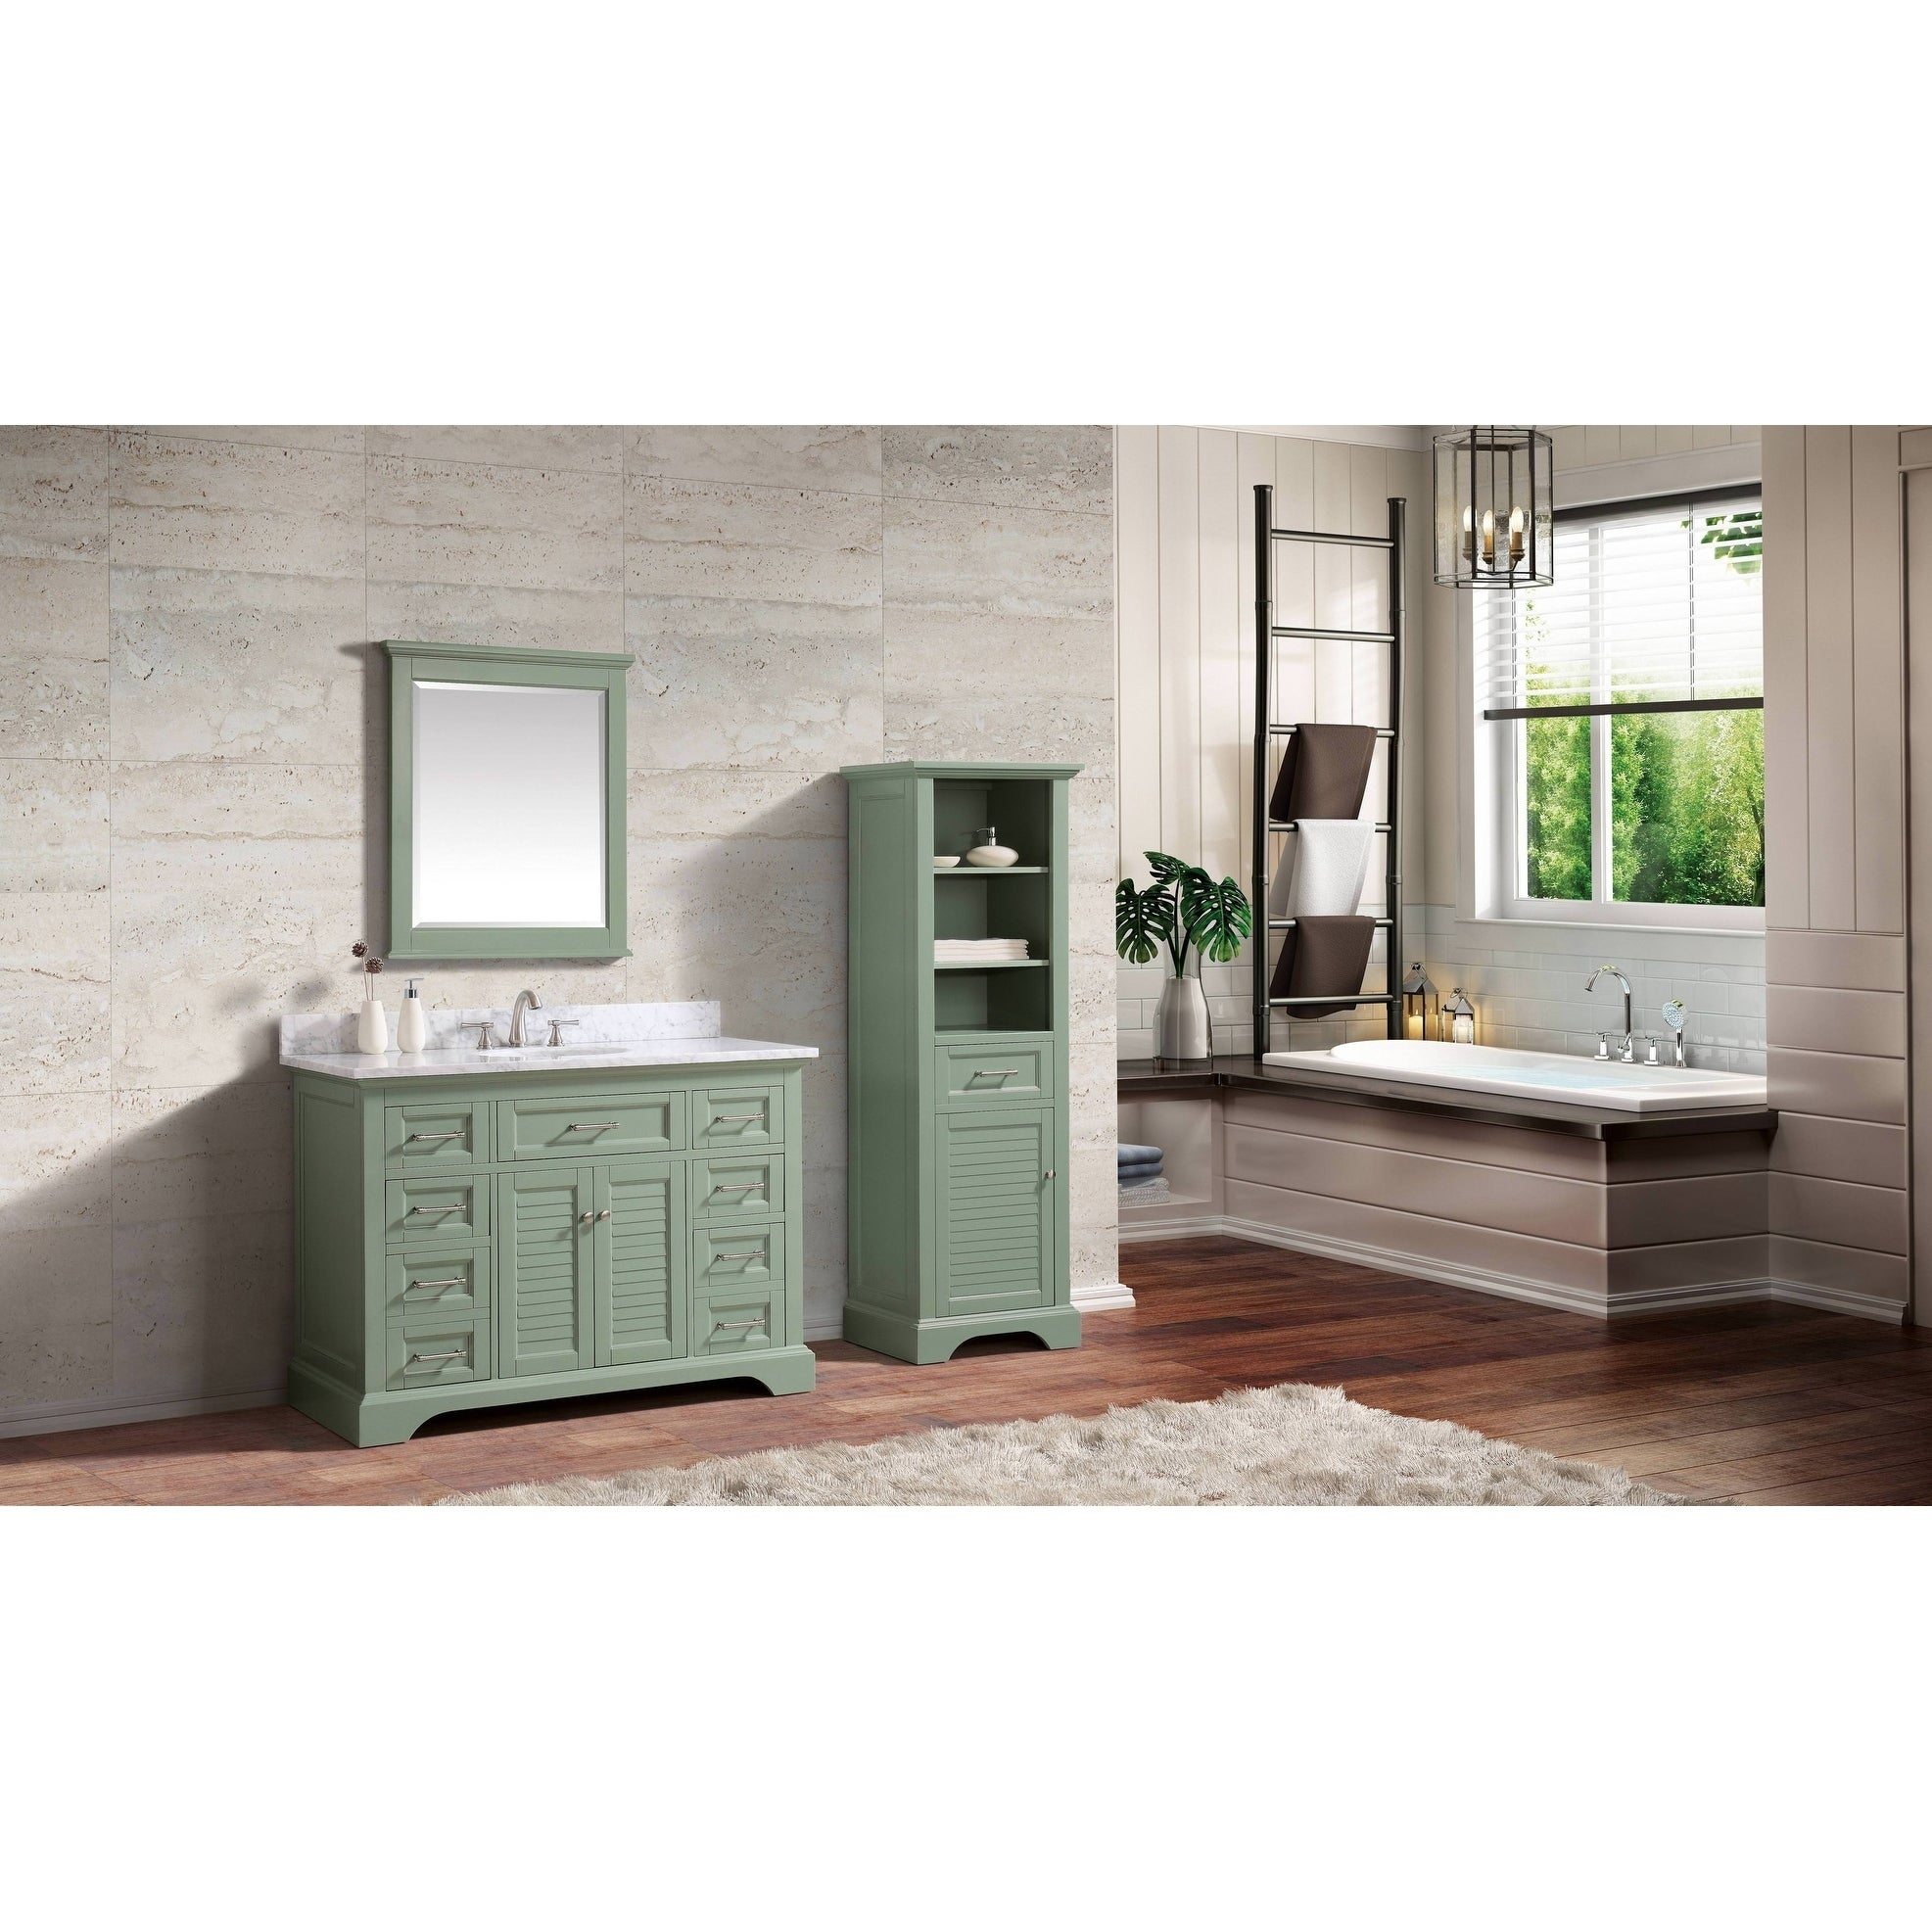 """Avanity Colton 28 In. Wall Mirror - Basil Green - Basil Green - 28""""w X 32""""h regarding Colton Modern & Contemporary Wall Mirrors (Image 3 of 30)"""